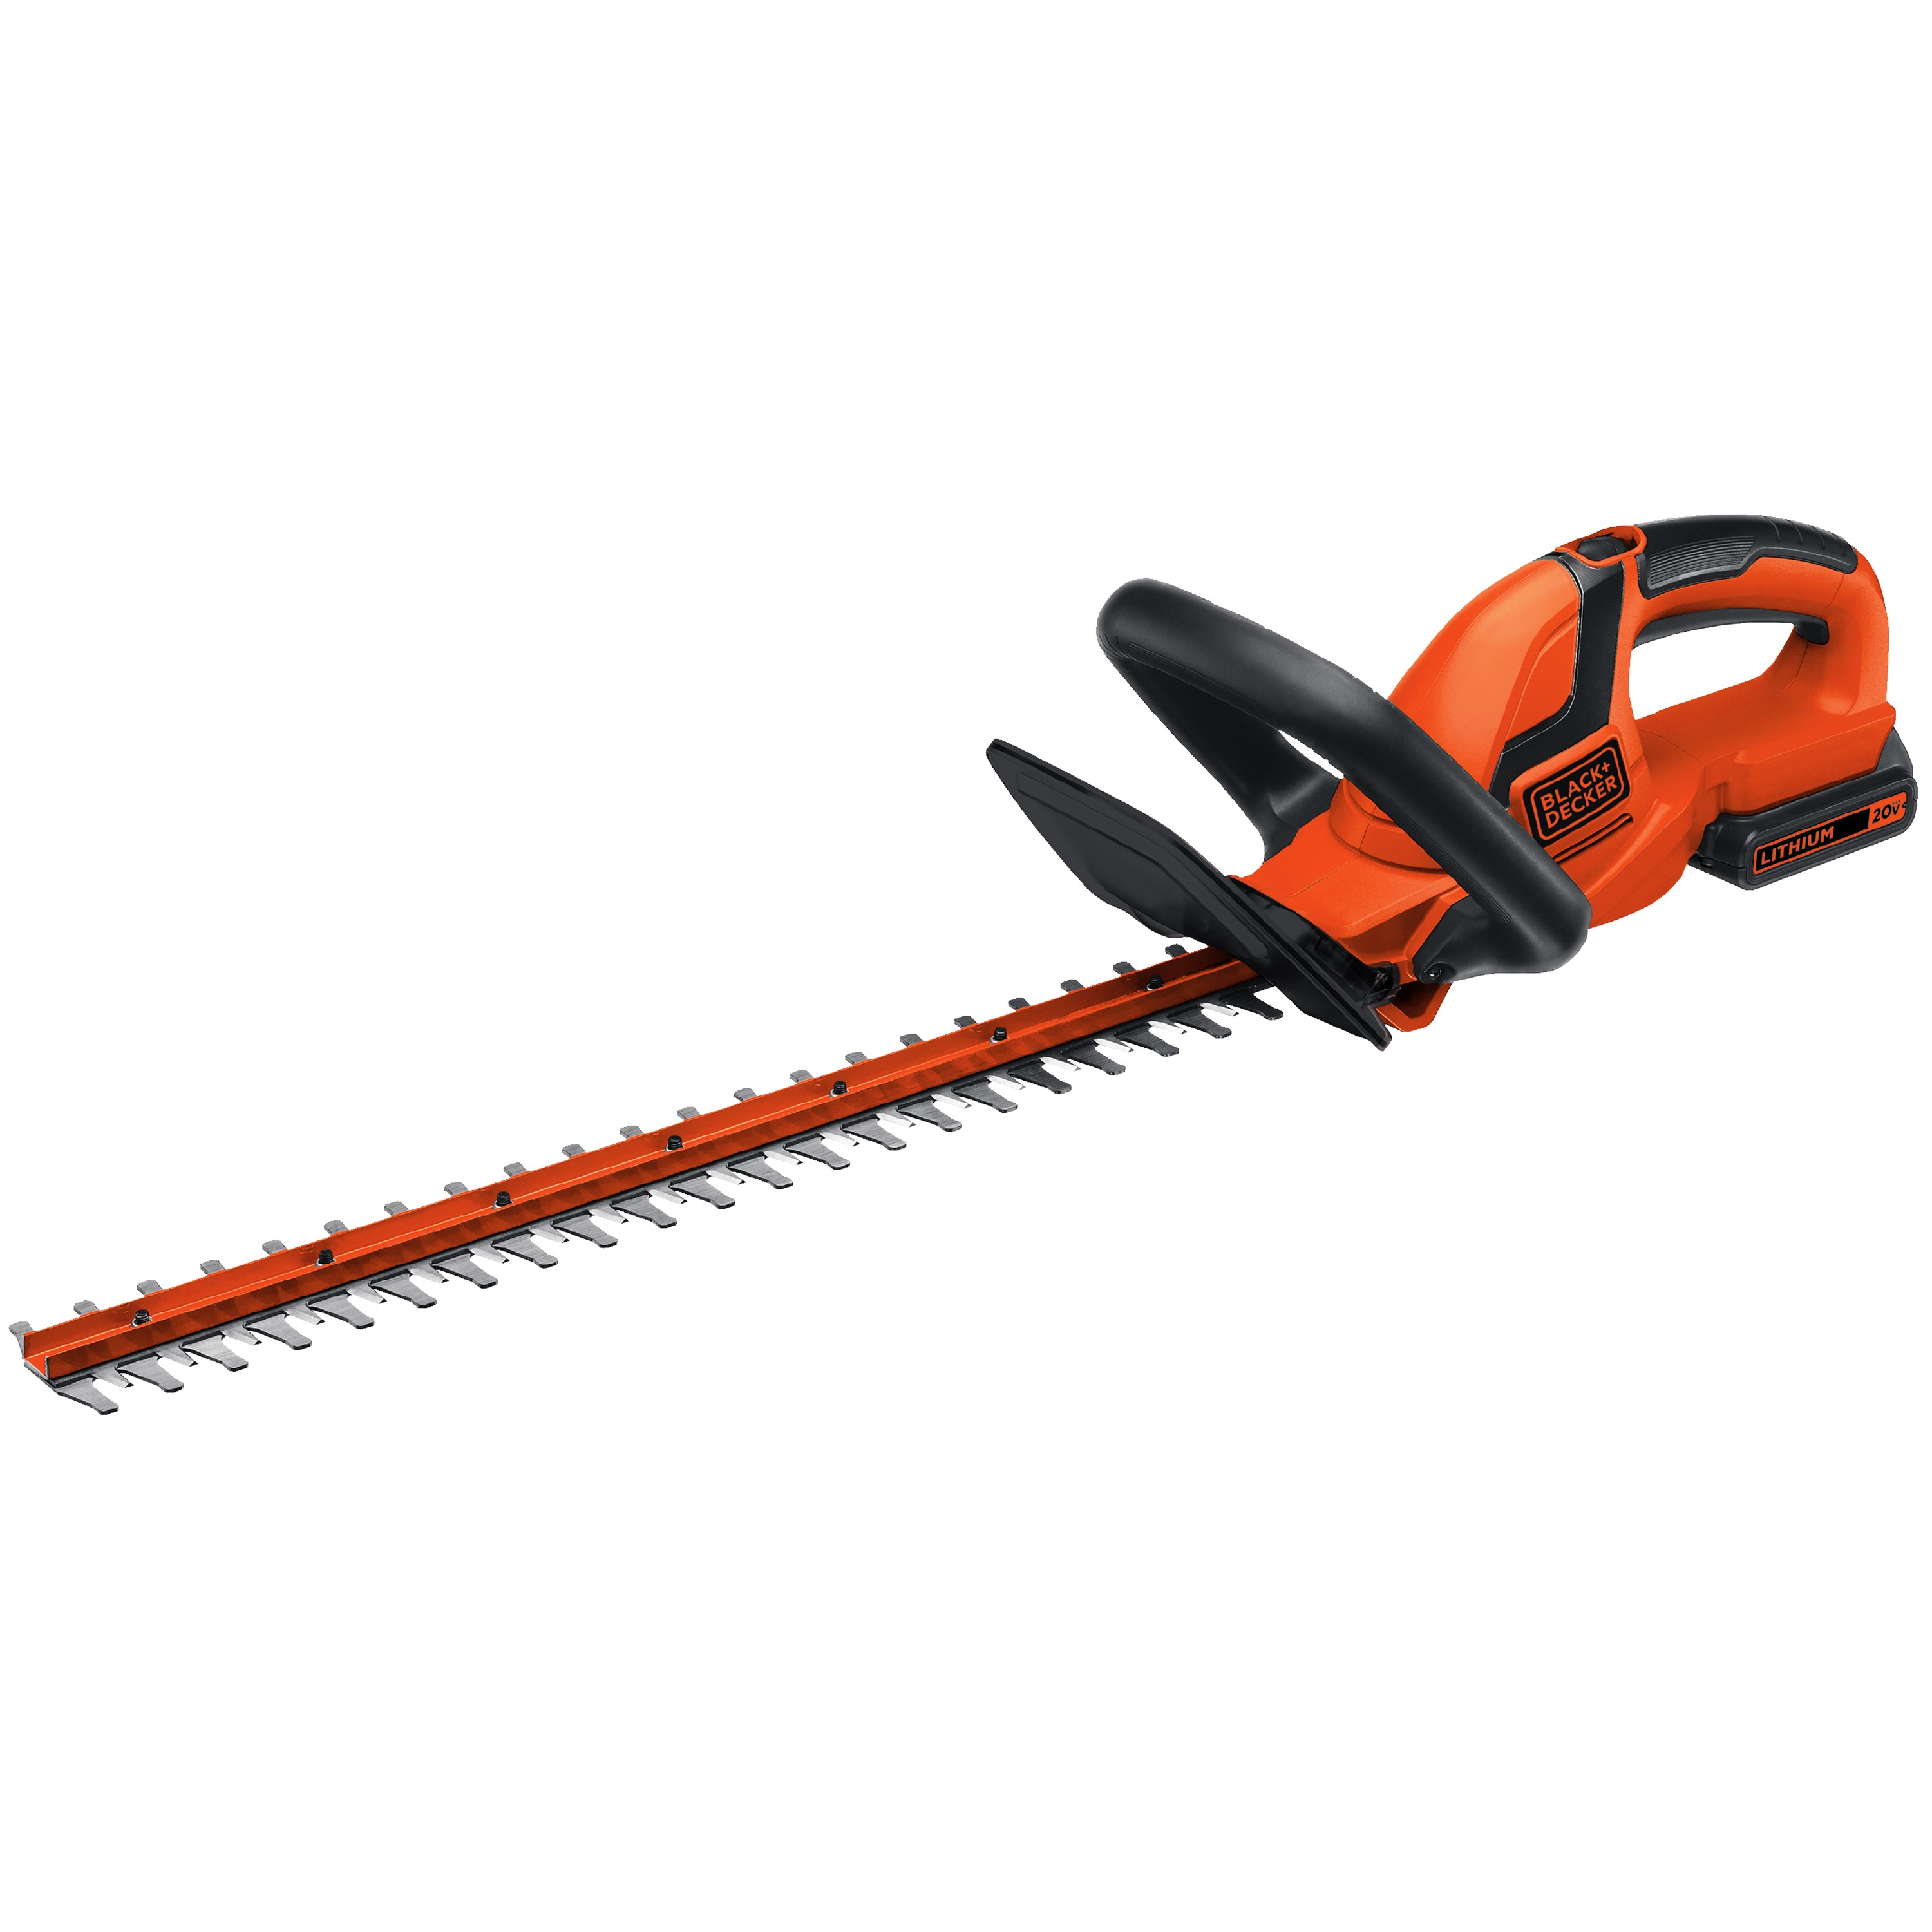 Black & Decker LHT2220 20V MAX* Cordless Lithium 22 in. Hedge Trimmer by Stanley Black & Decker